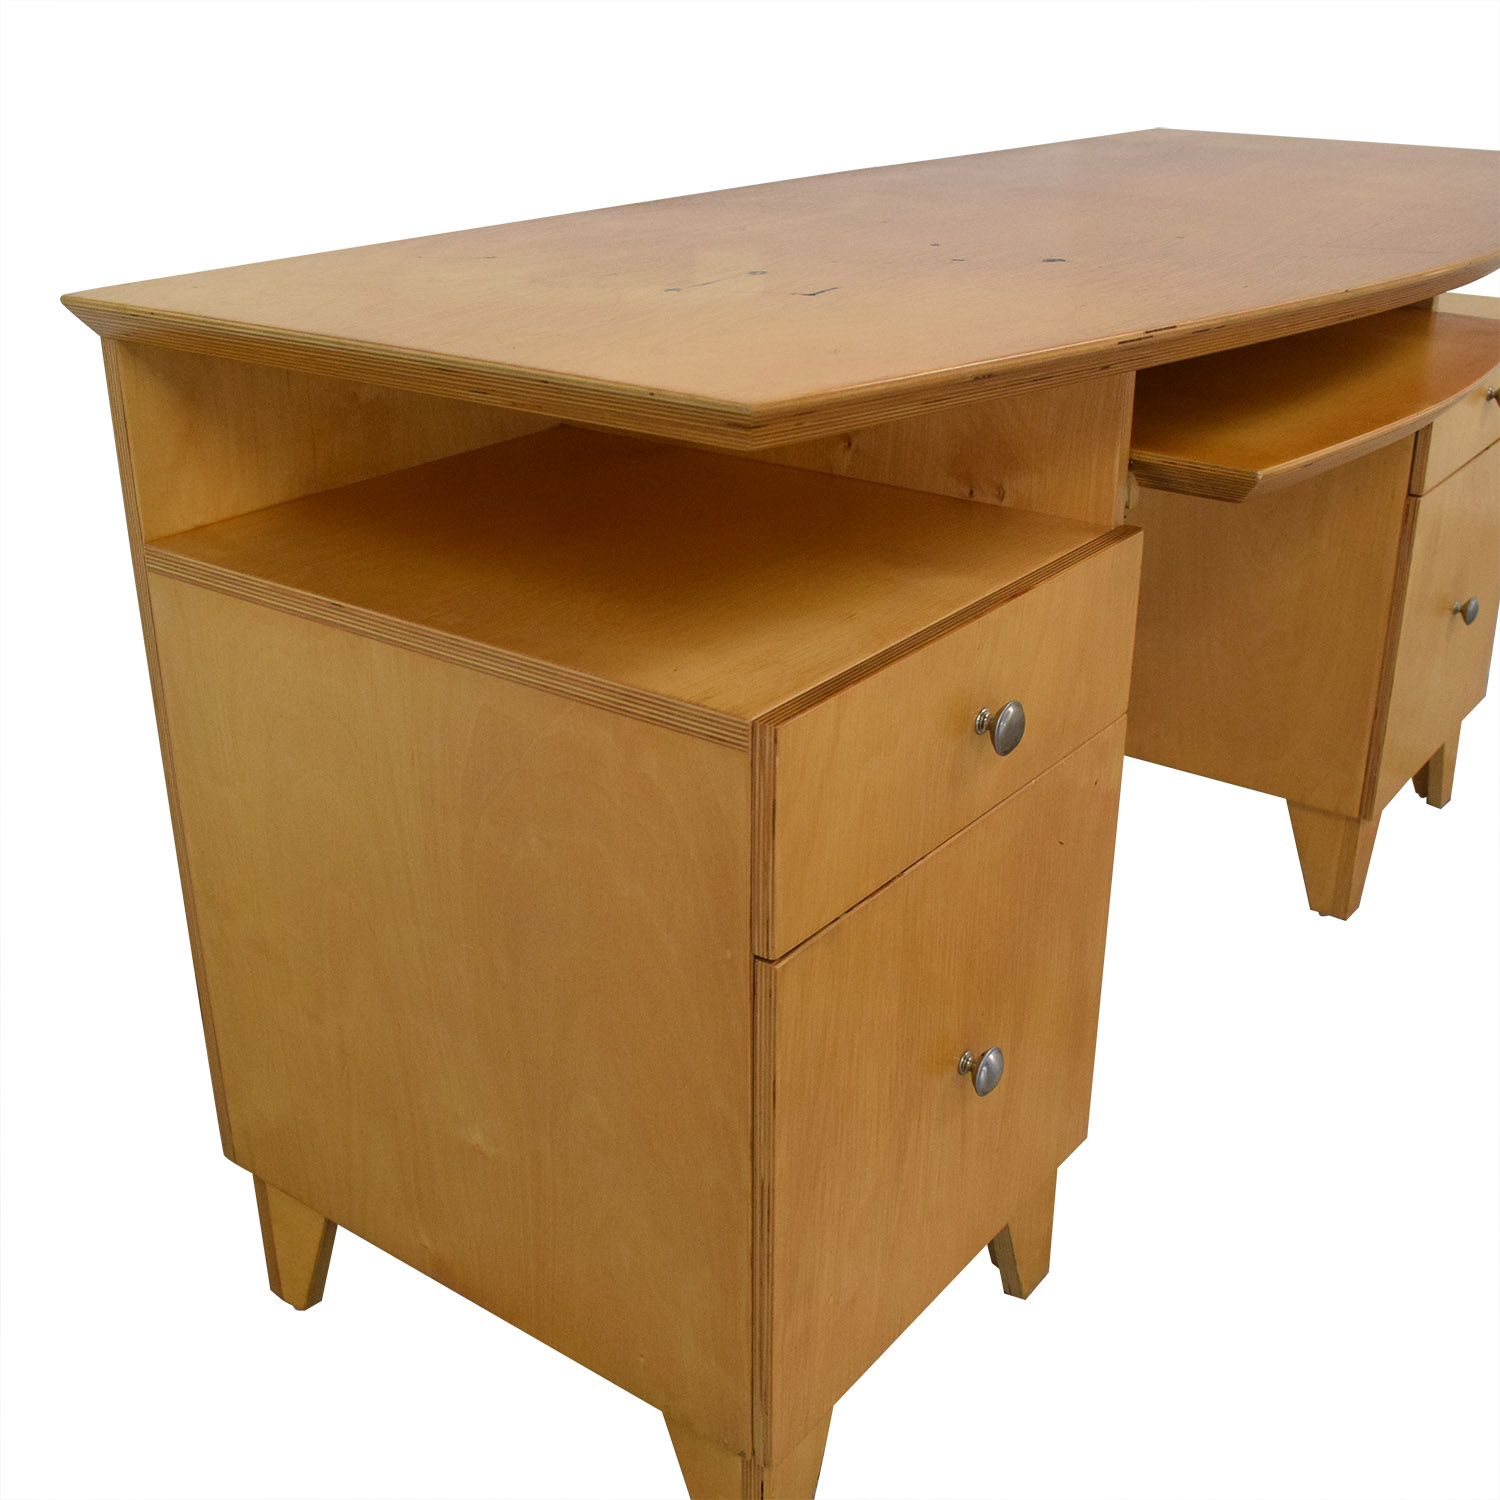 Modernist Desk with Pull-Out Keyboard Tray on sale